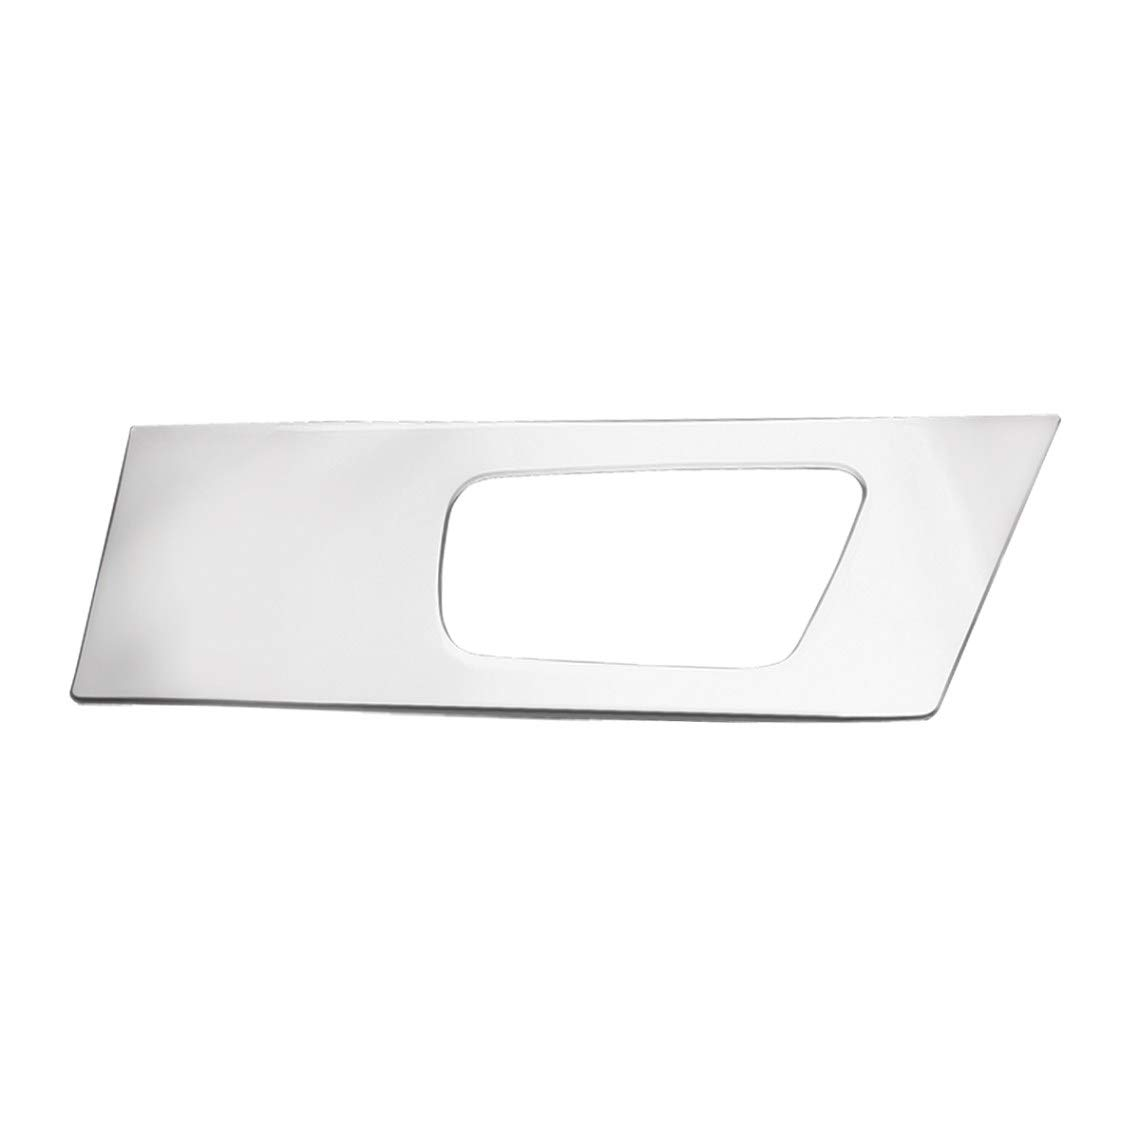 Door Panel for KW 2007 W/&T Model GG Grand General 68927 Chrome Plated Plastic in L//H